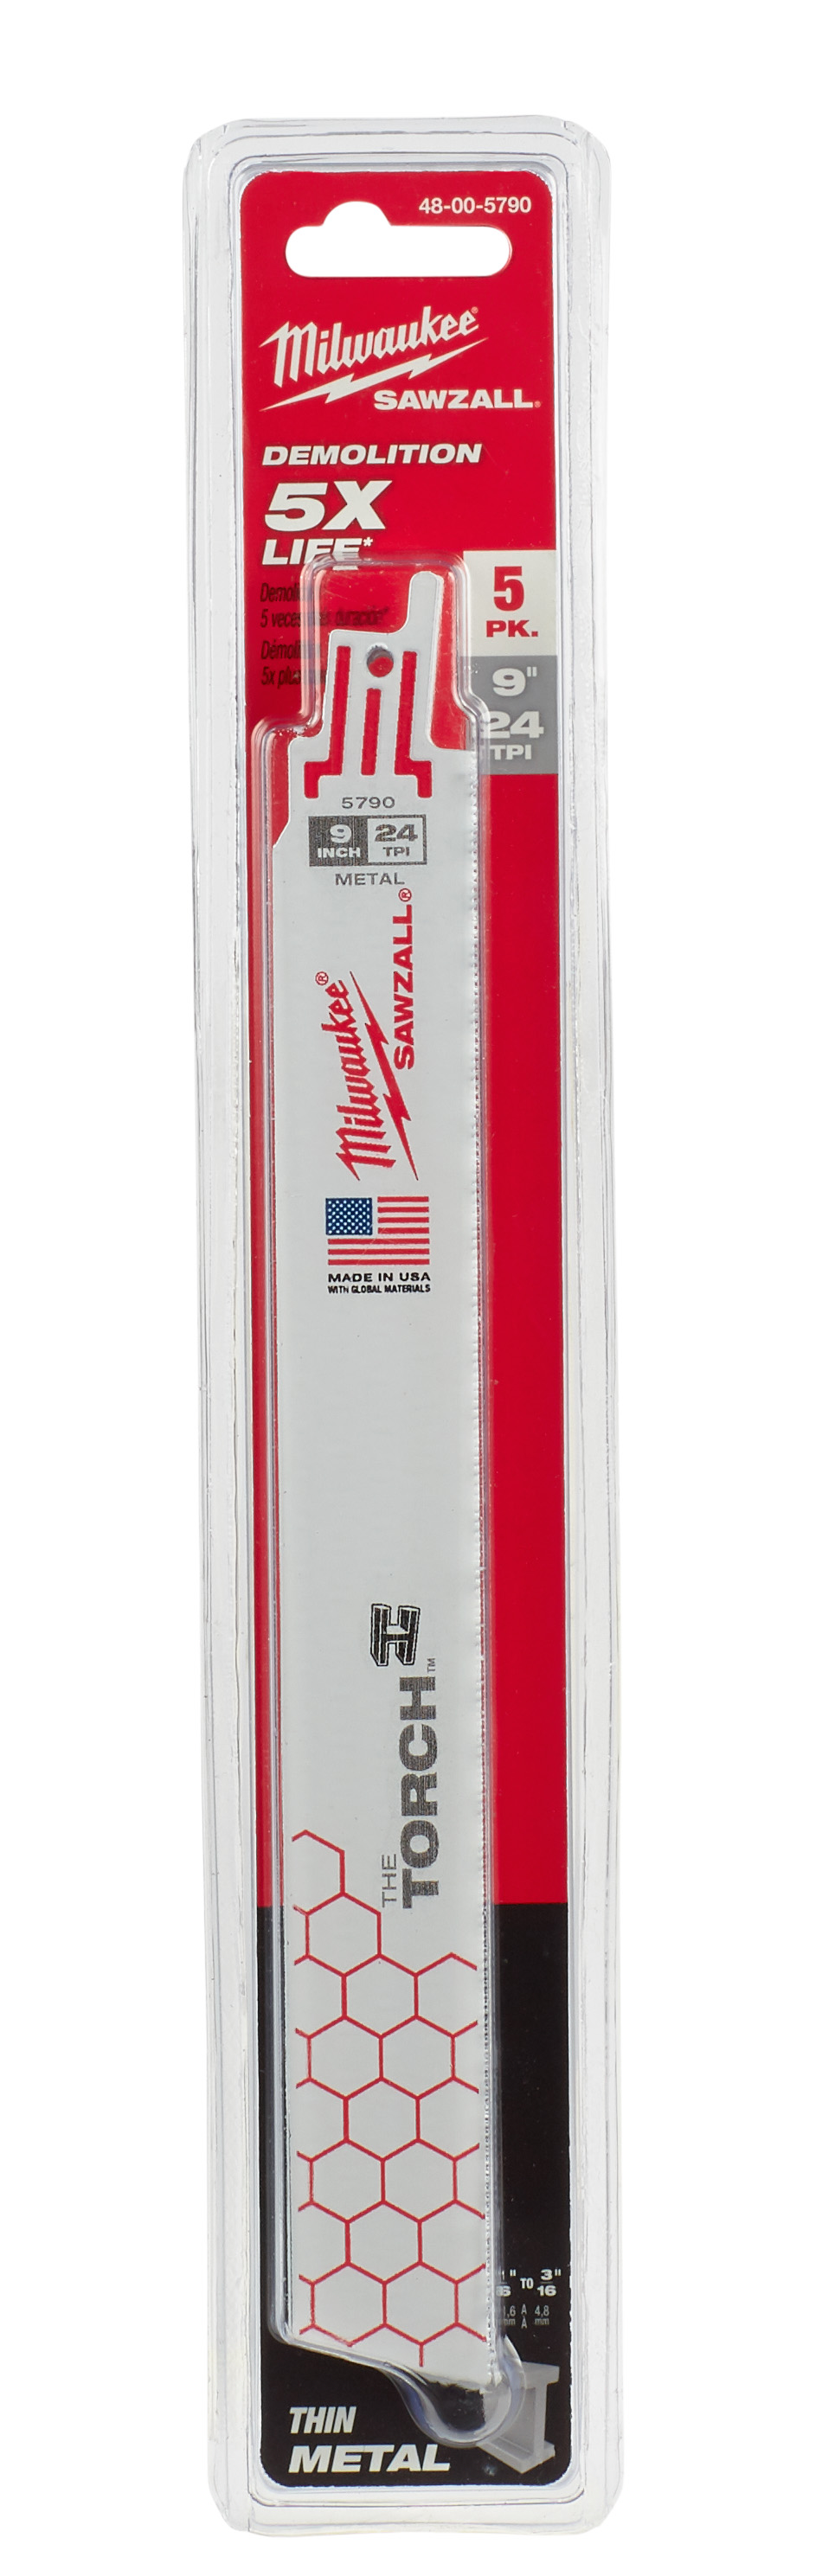 Milwaukee® SAWZALL® The Torch™ 48-00-5790 Double Duty Straight Back Reciprocating Saw Blade, 9 in L x 1 in W, 24 TPI, Bi-Metal Body, Universal/Toothed Edge Tang